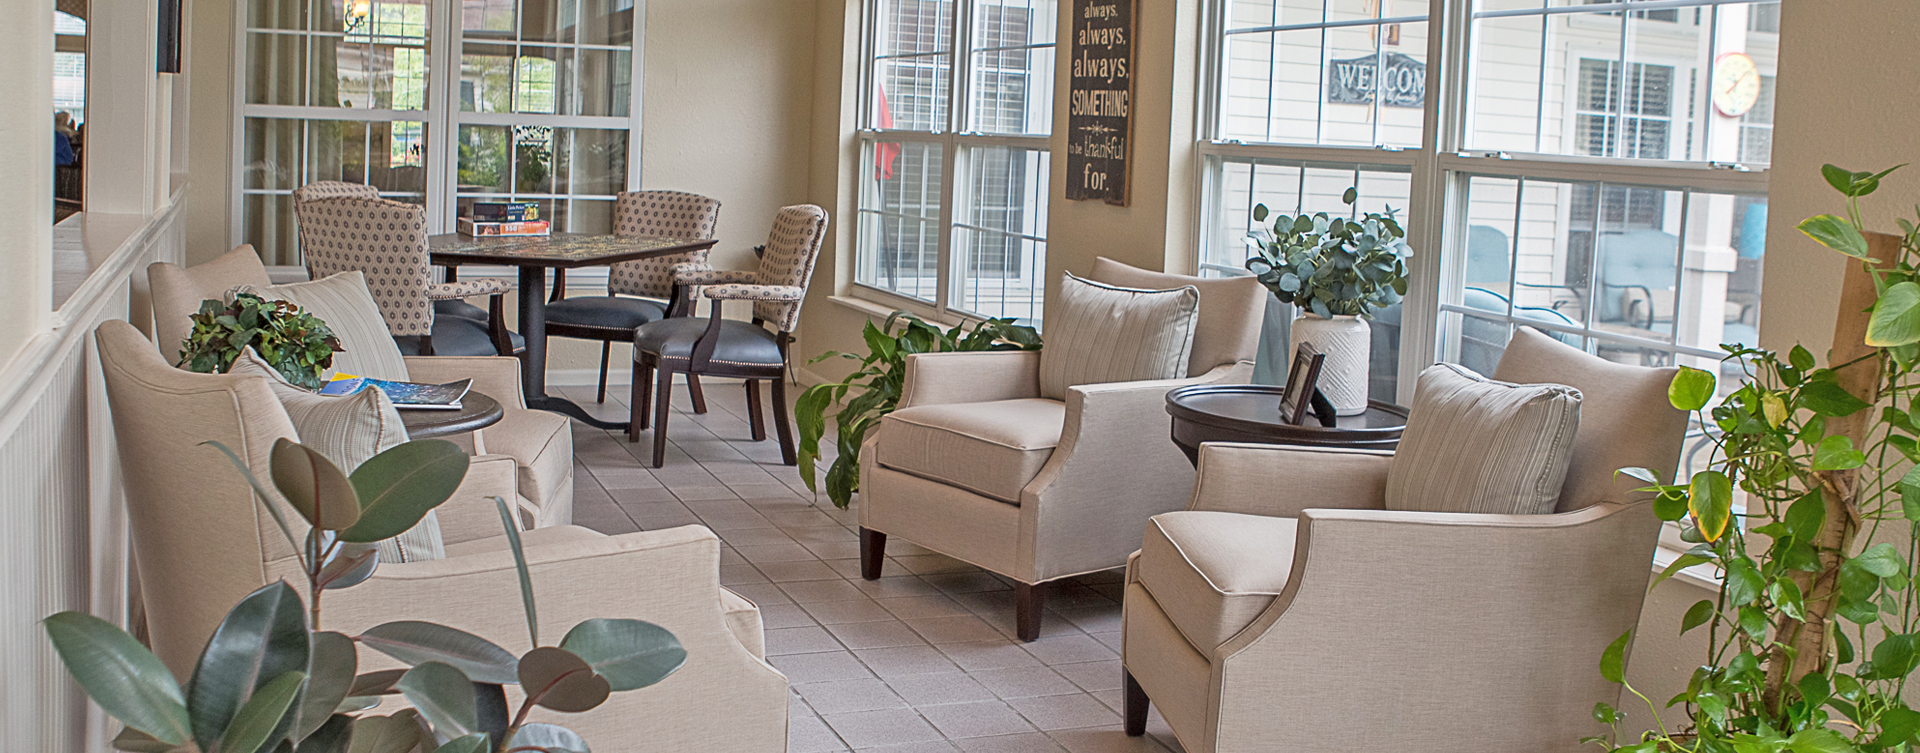 Enjoy the view of the outdoors from the sunroom at Bickford of Clinton